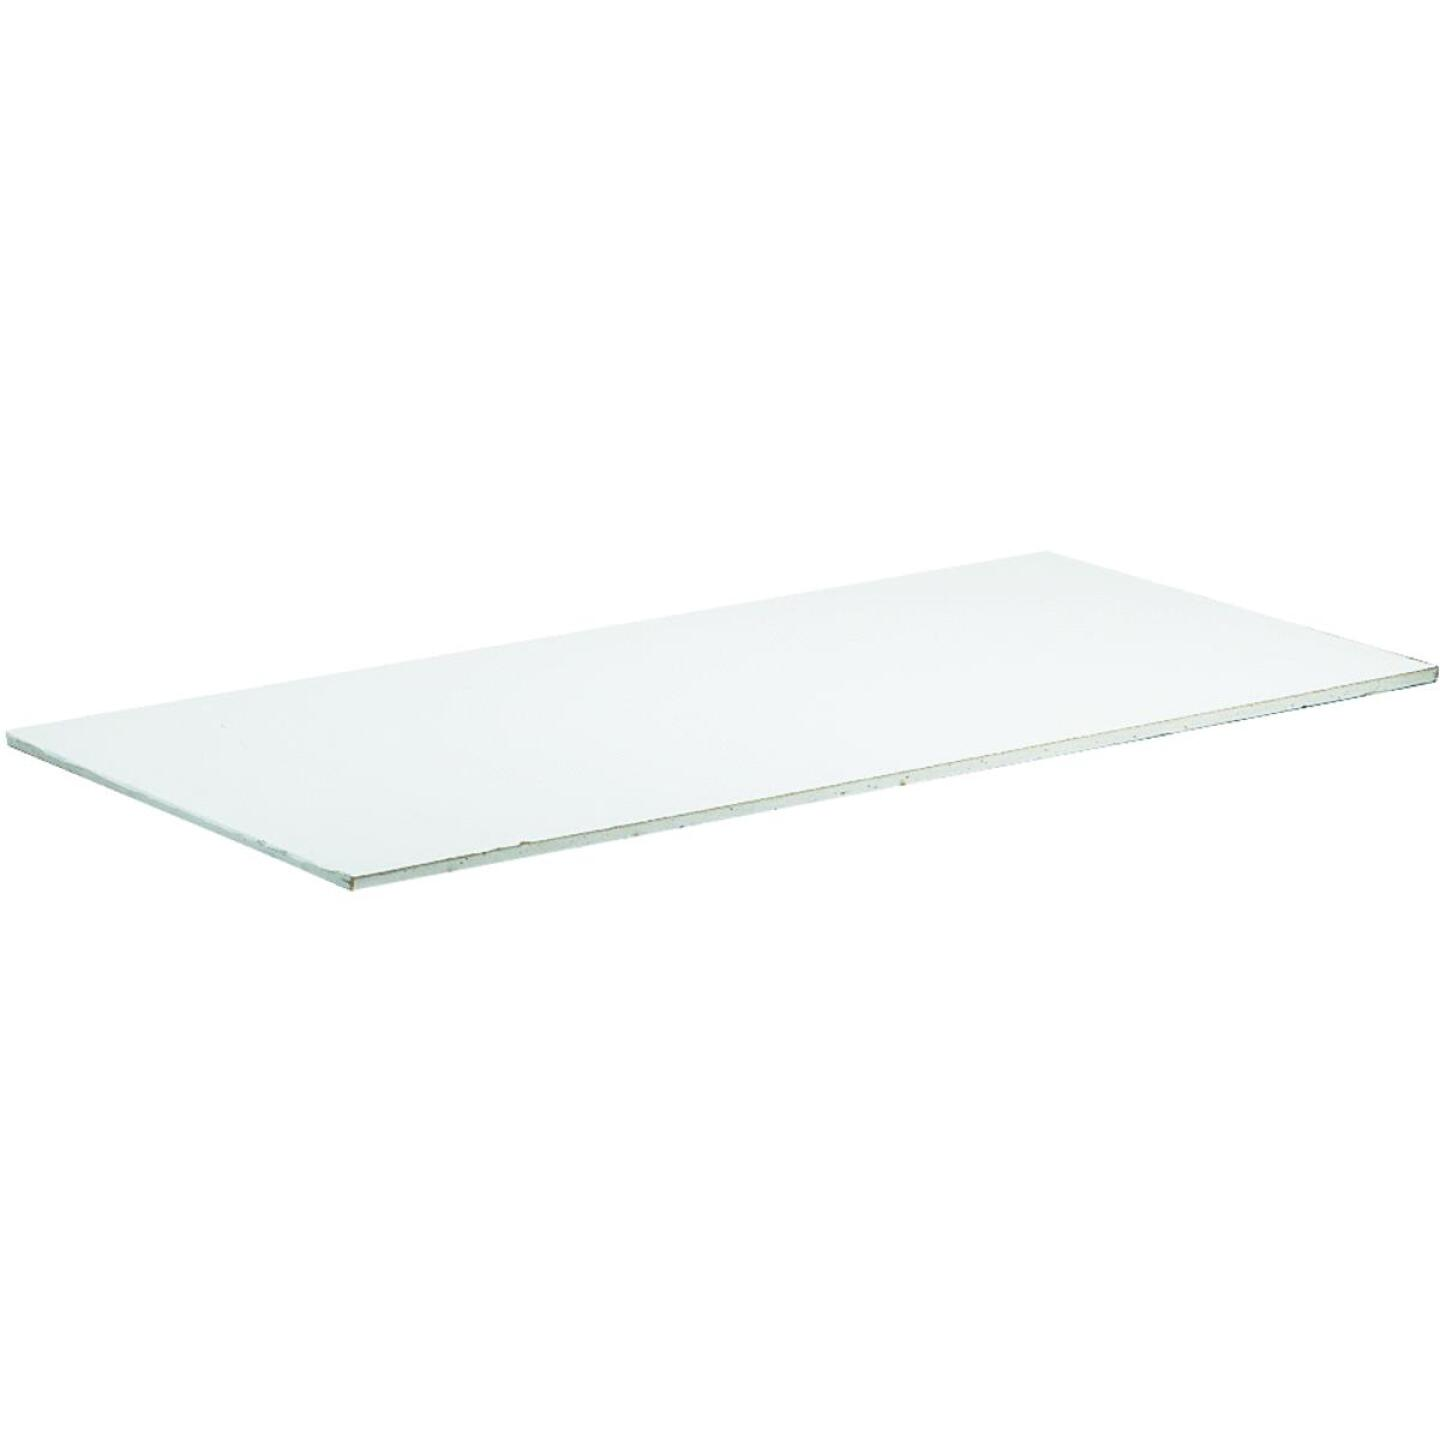 Sheetrock ClimaPlus 2 Ft. x 4 Ft. White Gypsum Fire Rated Lay-In Ceiling Tile (4-Count) Image 3